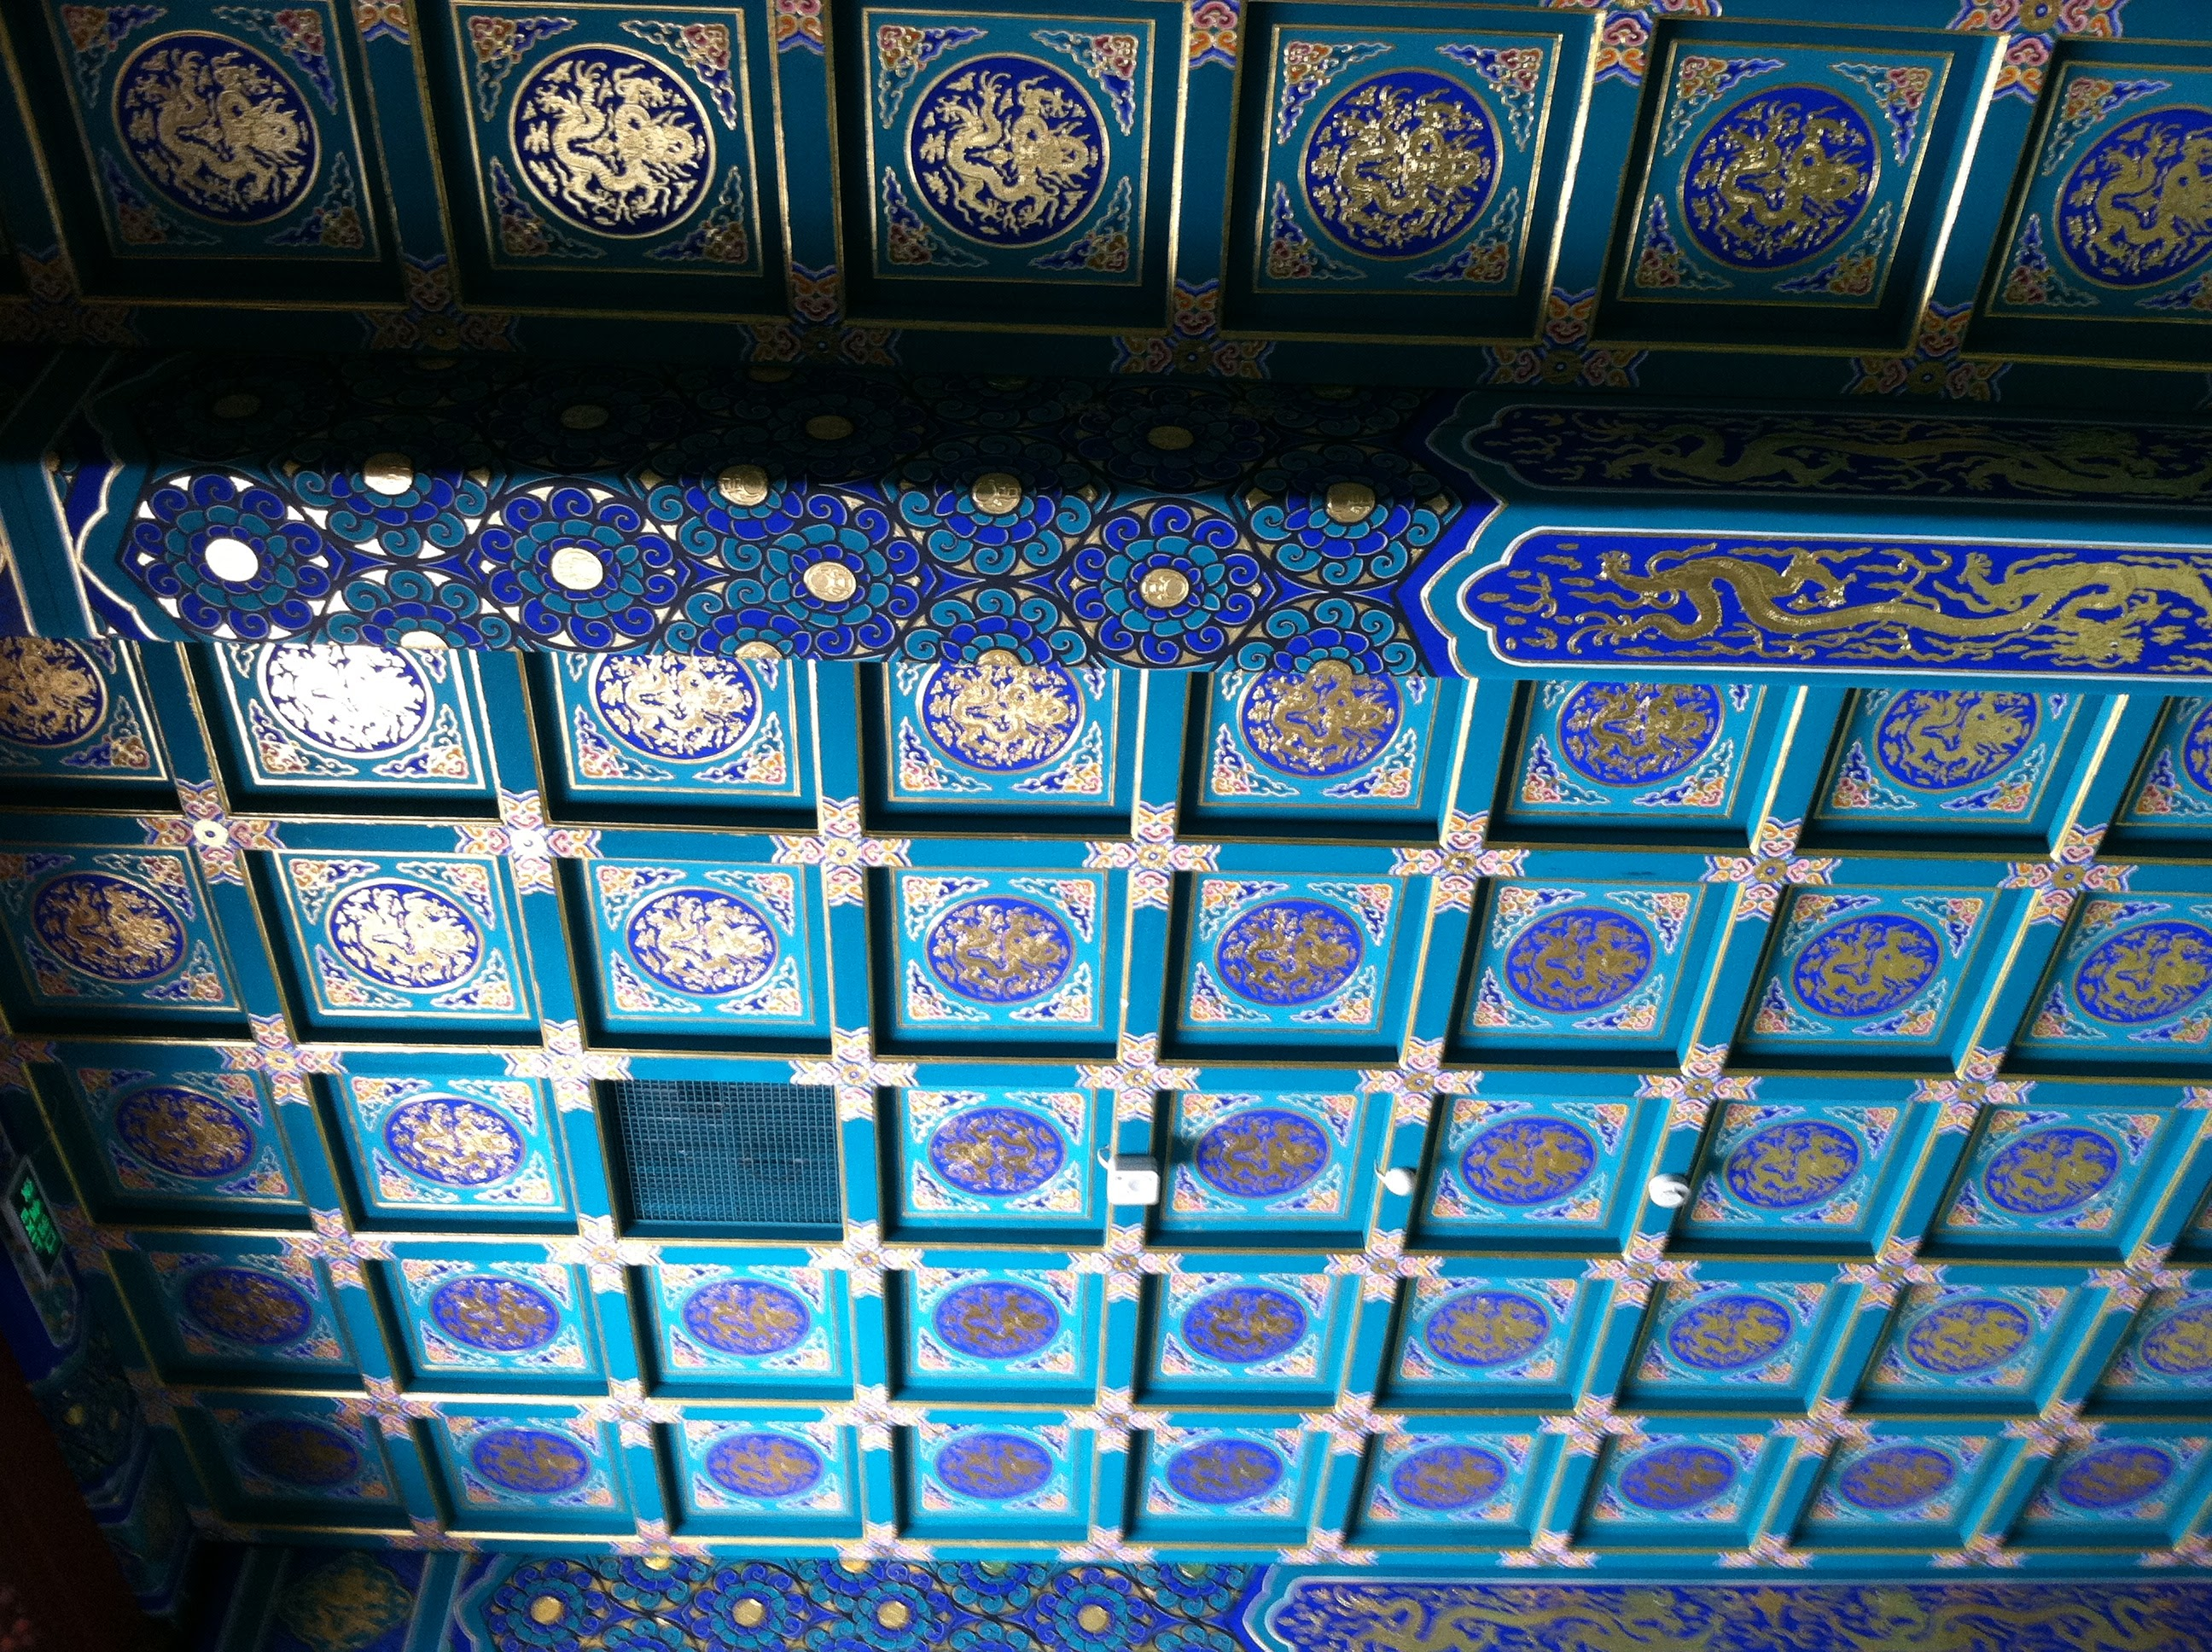 Prince Gong's Mansion Ceiling